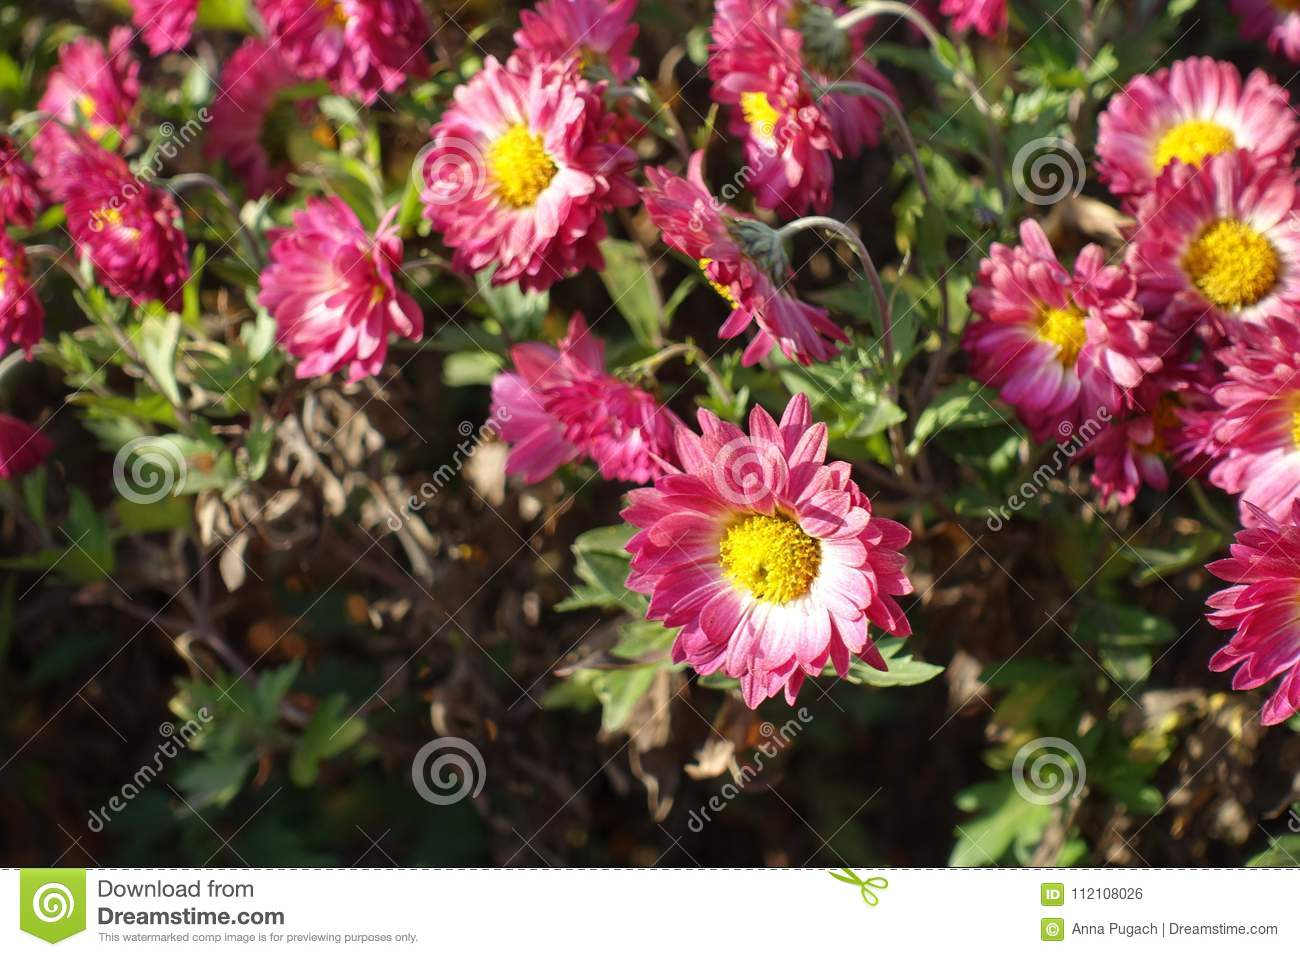 Daisy Like Flowerhead Of Chrysanthemum With Yellow Center And Pink